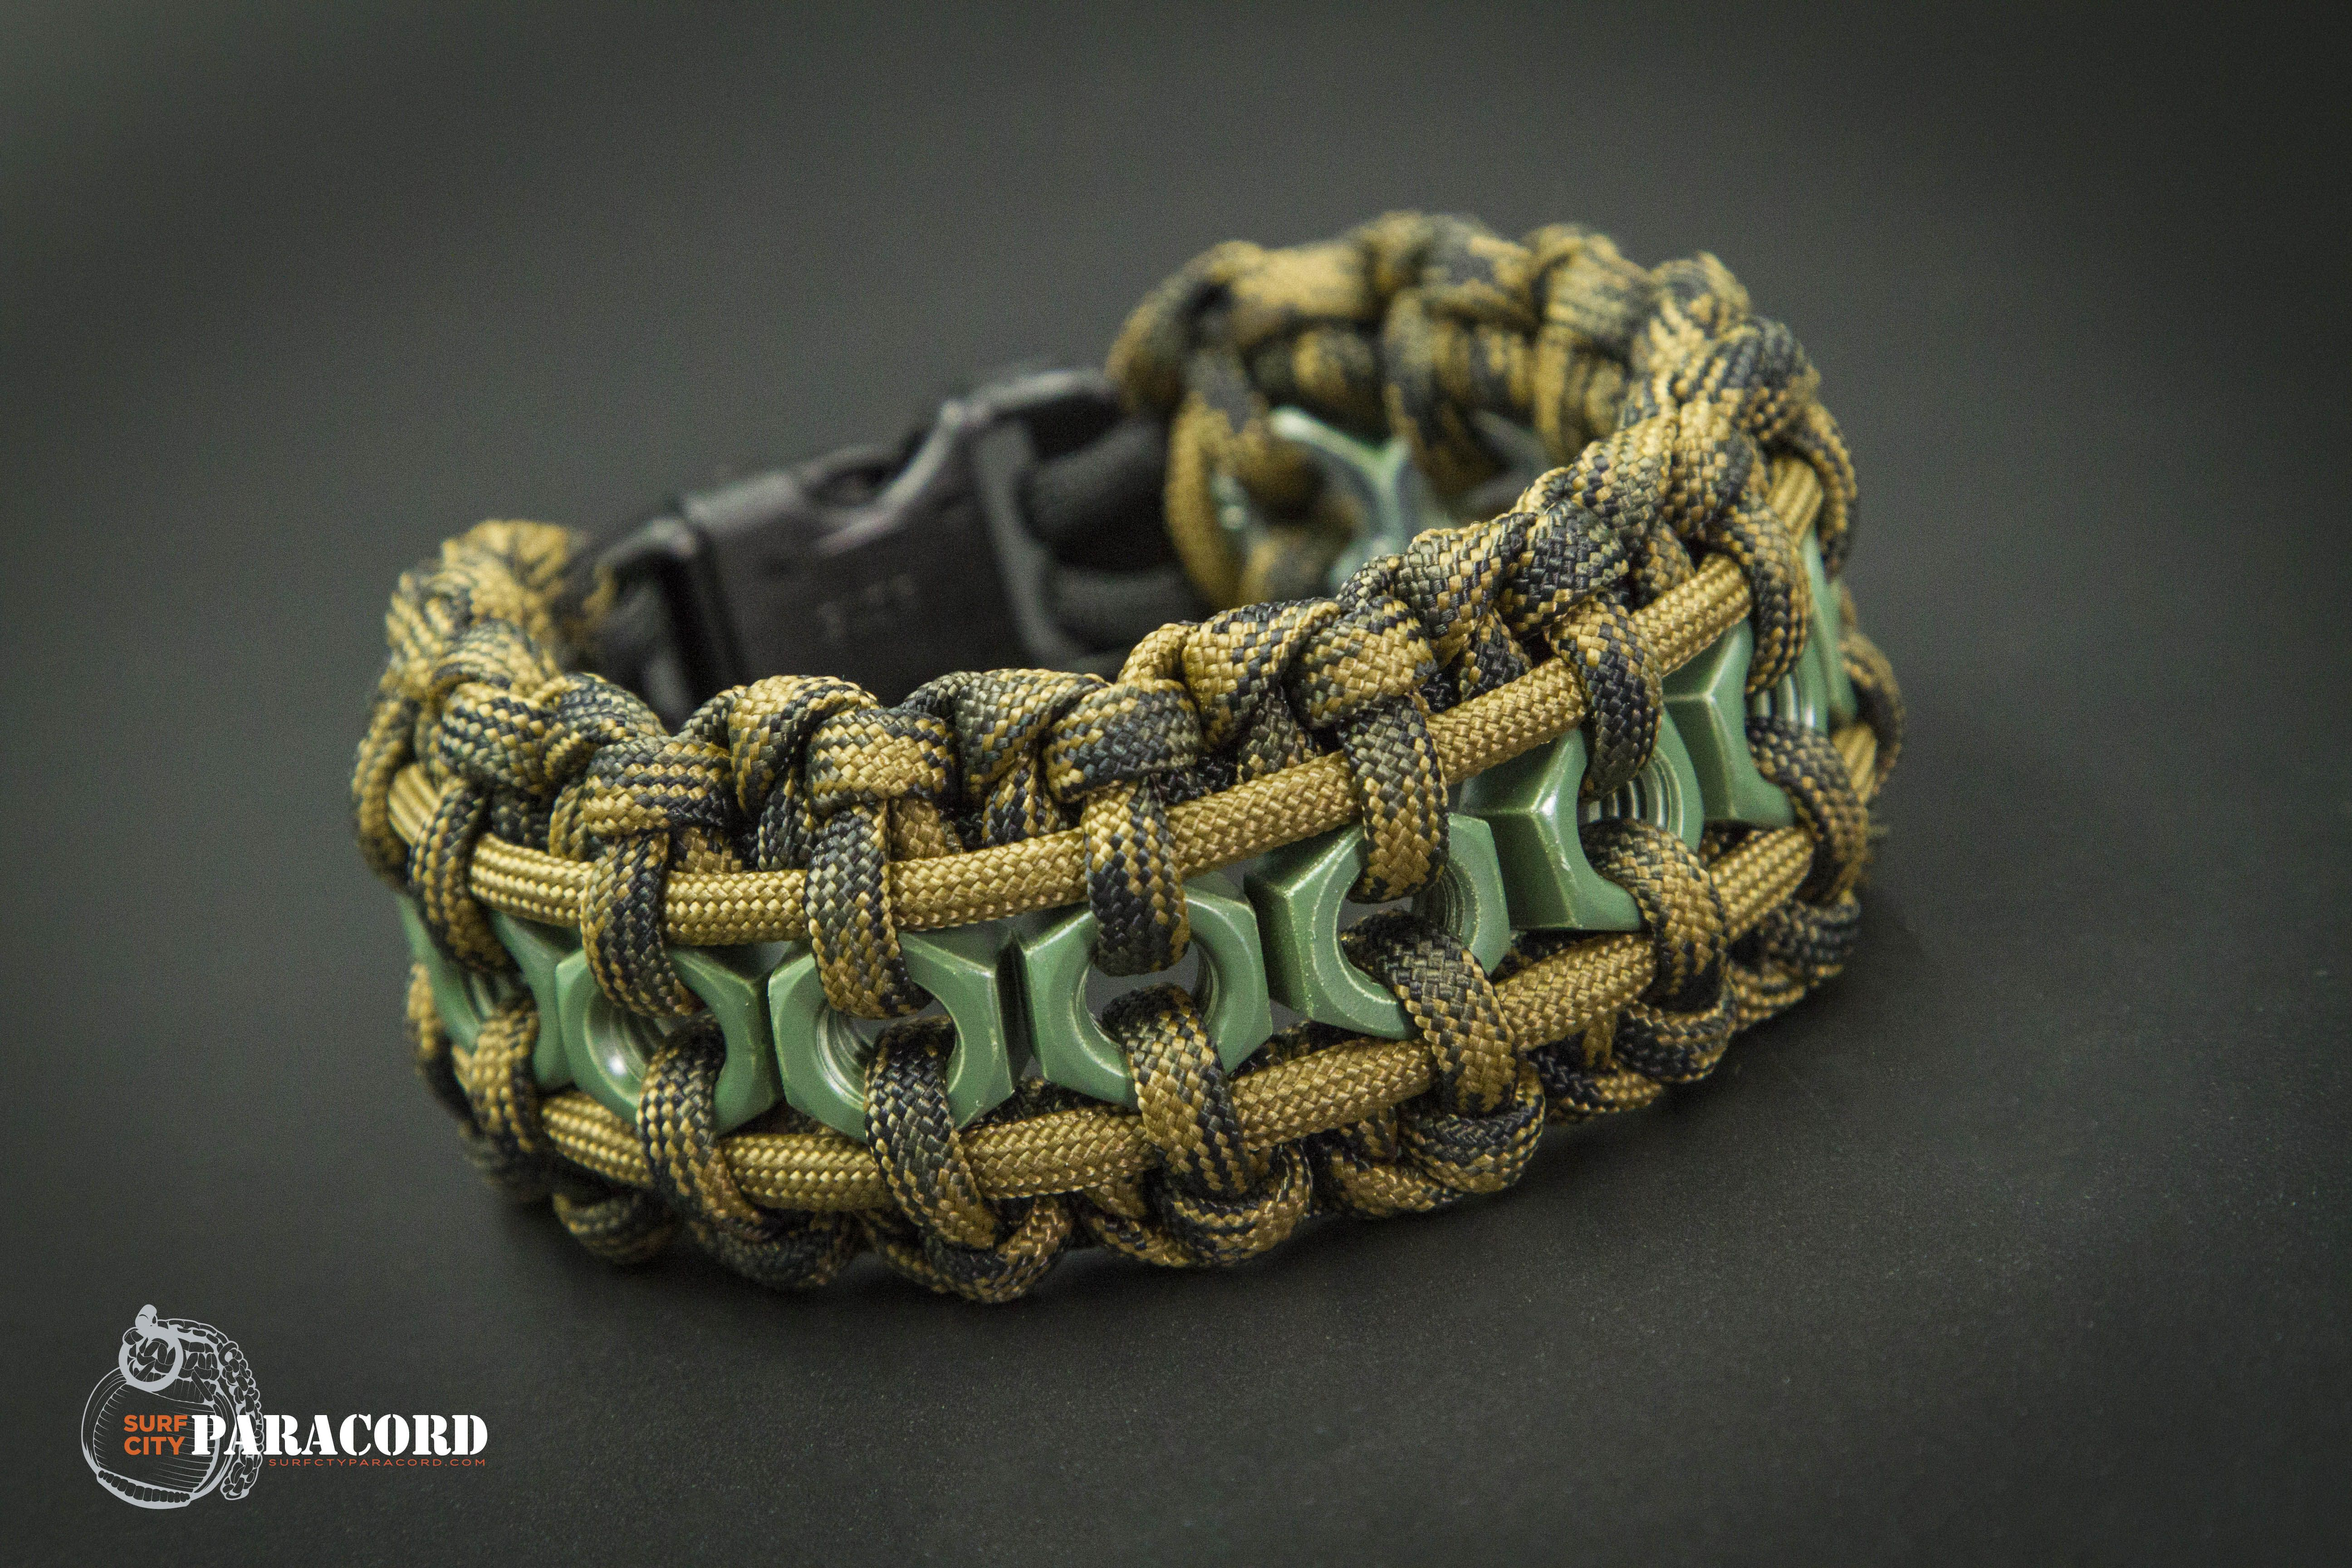 This Is One Awesome Bracelet That Makes A Bold Statement When